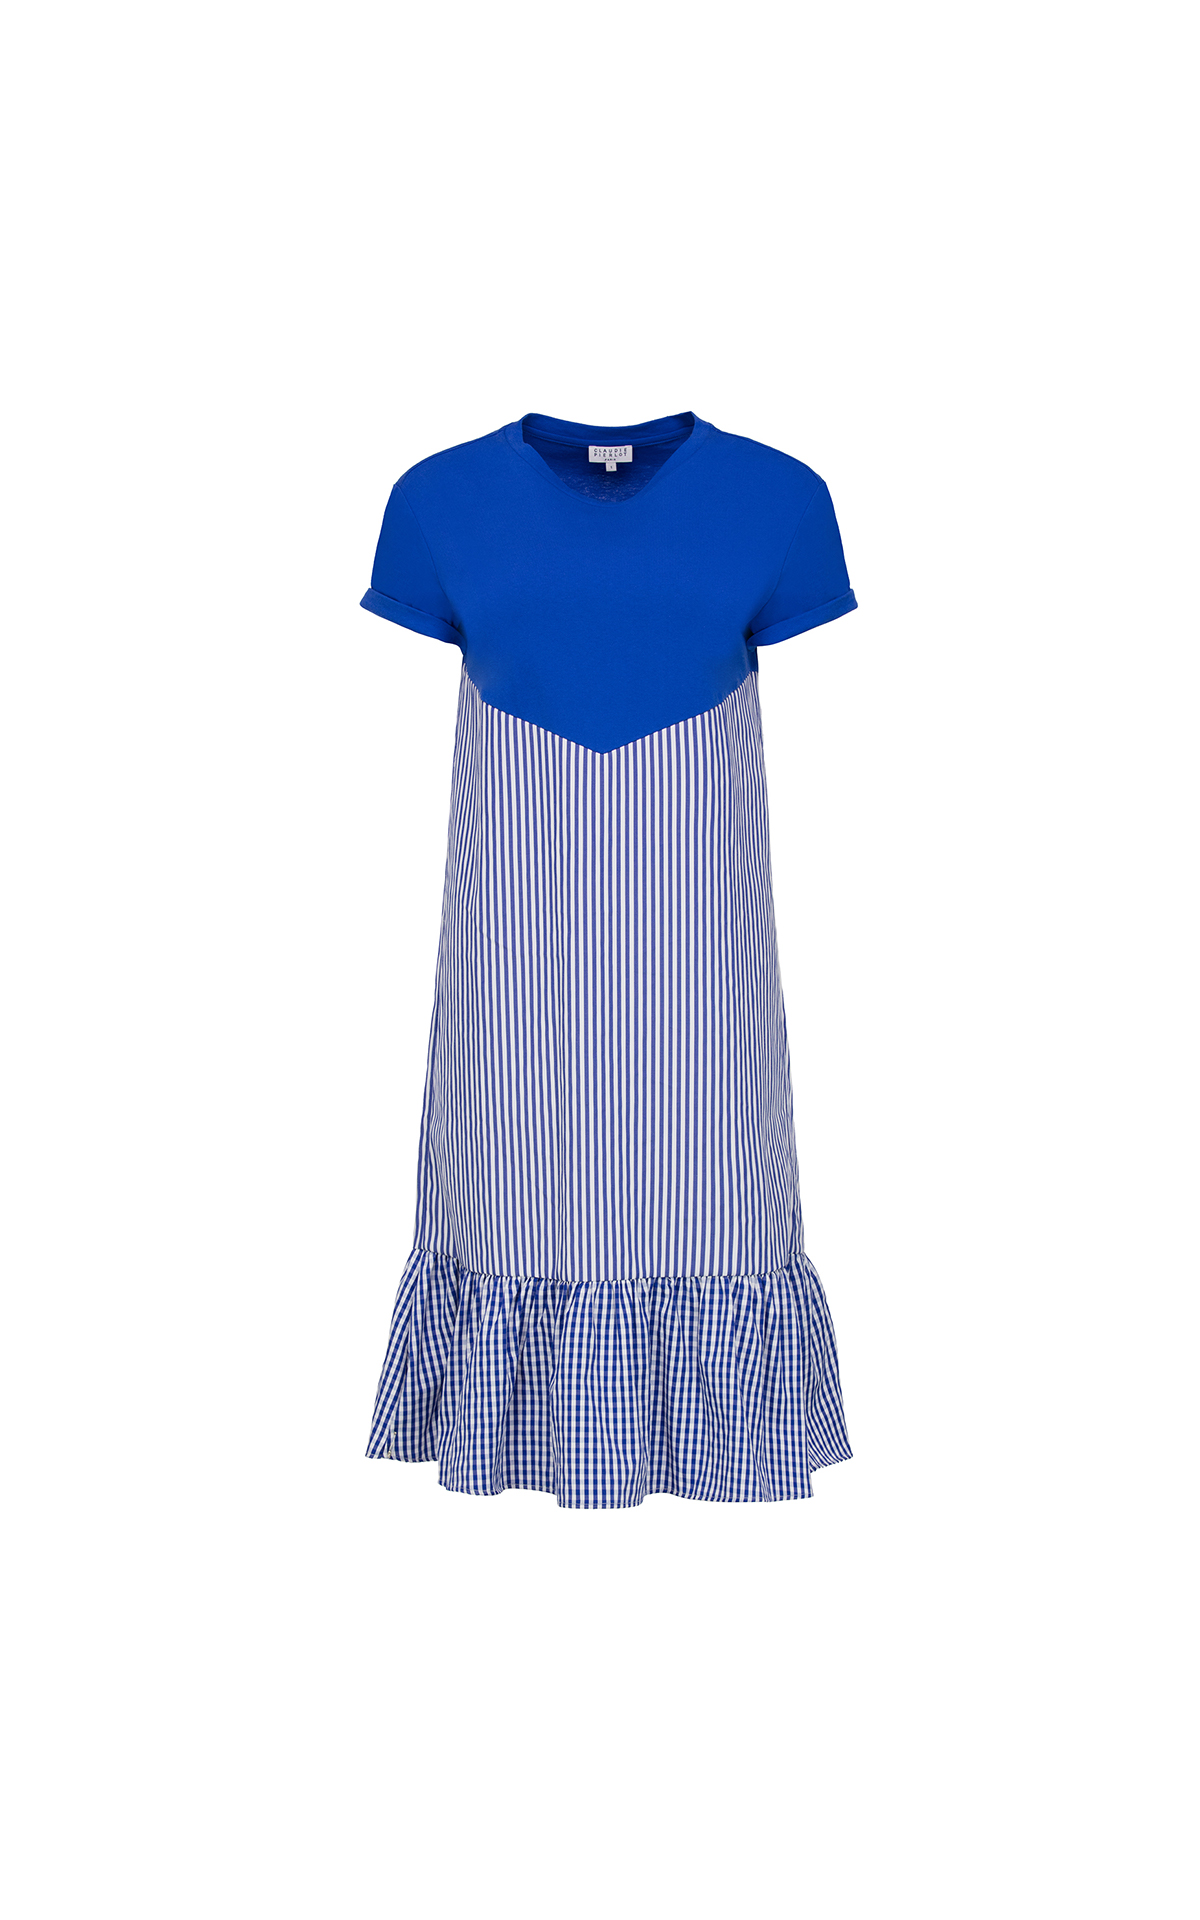 Claudie Pierlot Tomiji dress in indigo at The Bicester Village Shopping Collection